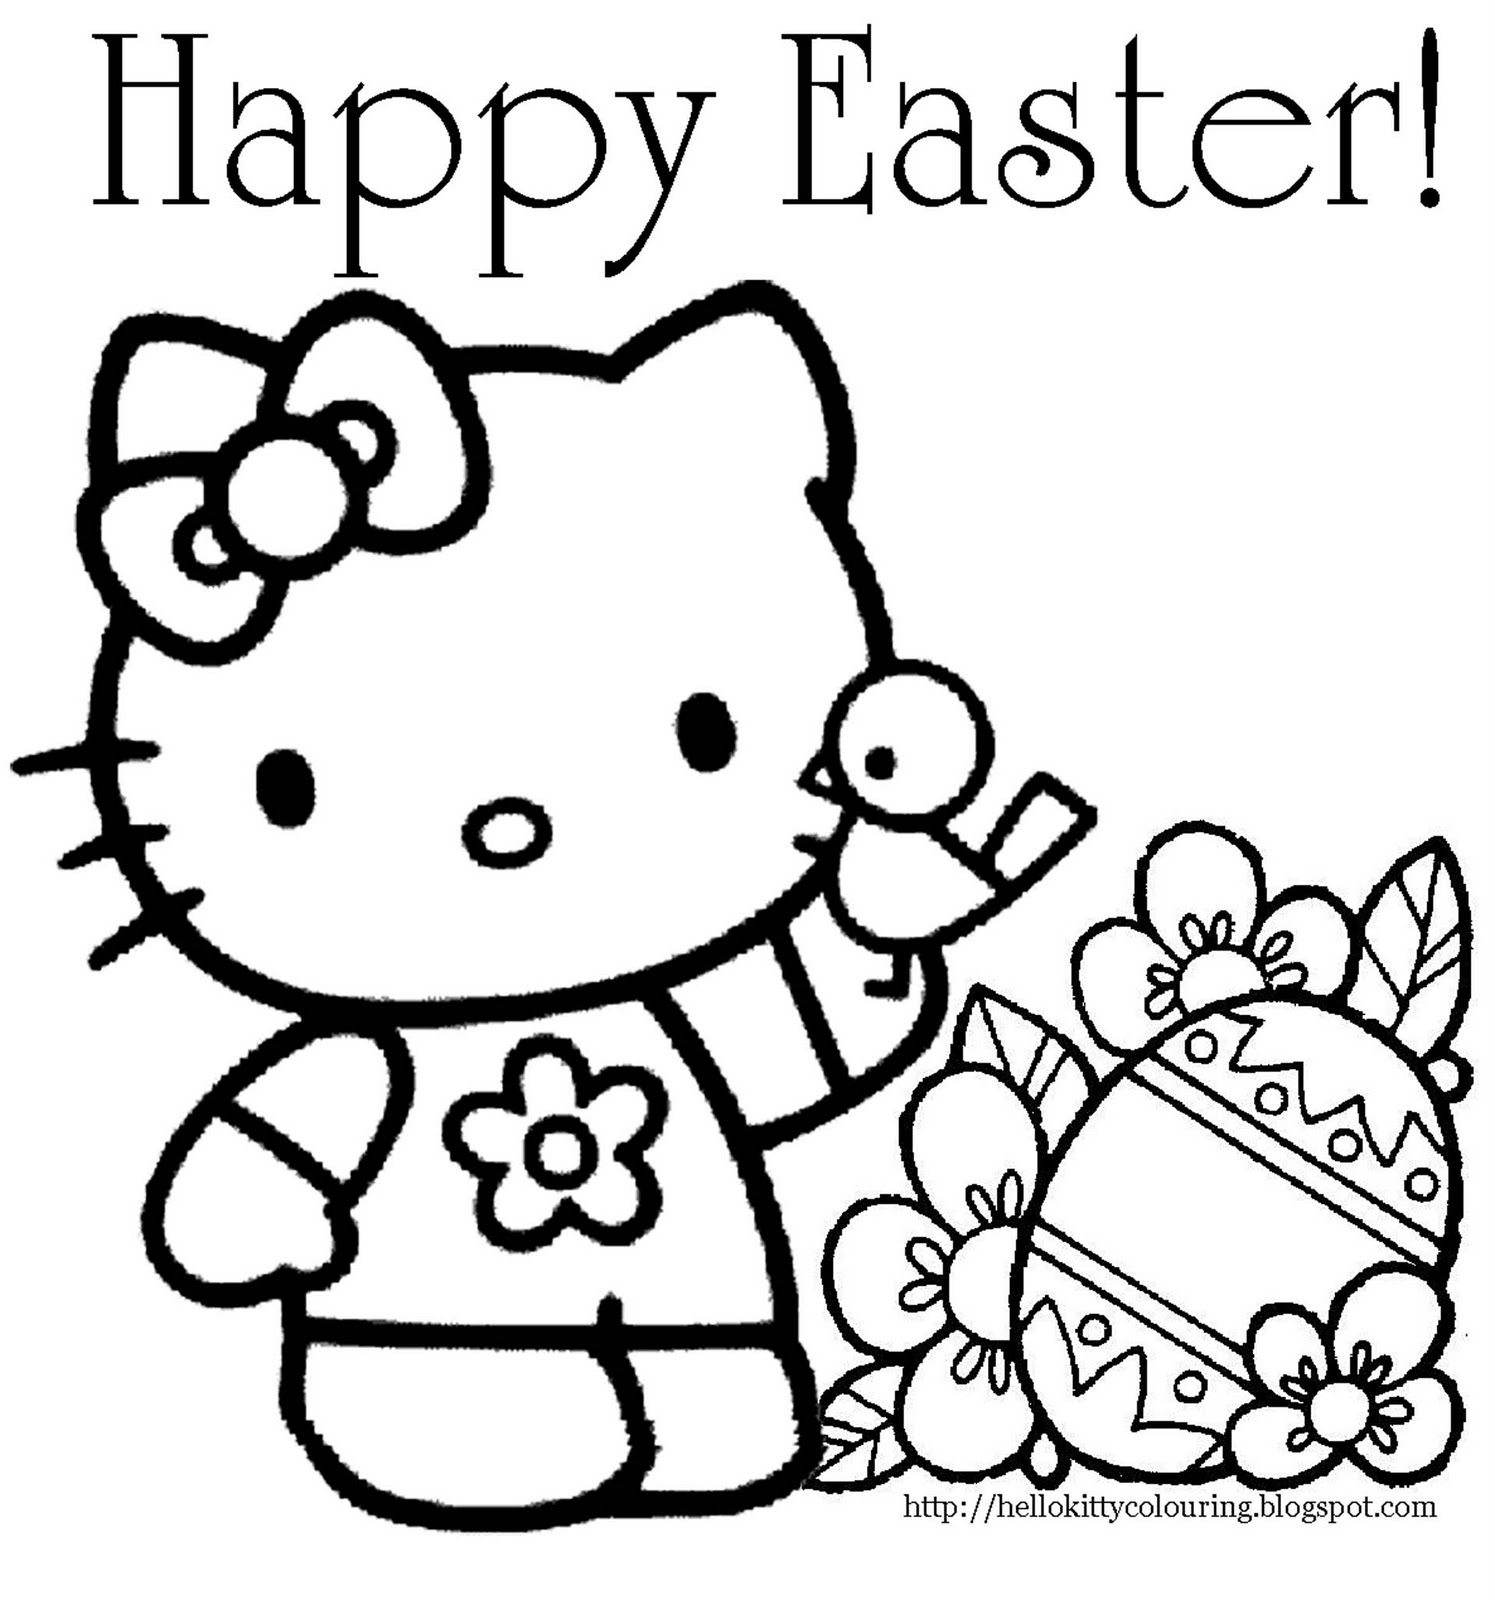 Easter Colouring Miscellaneous Easter Colouring Pages Coloring Pages For Easter